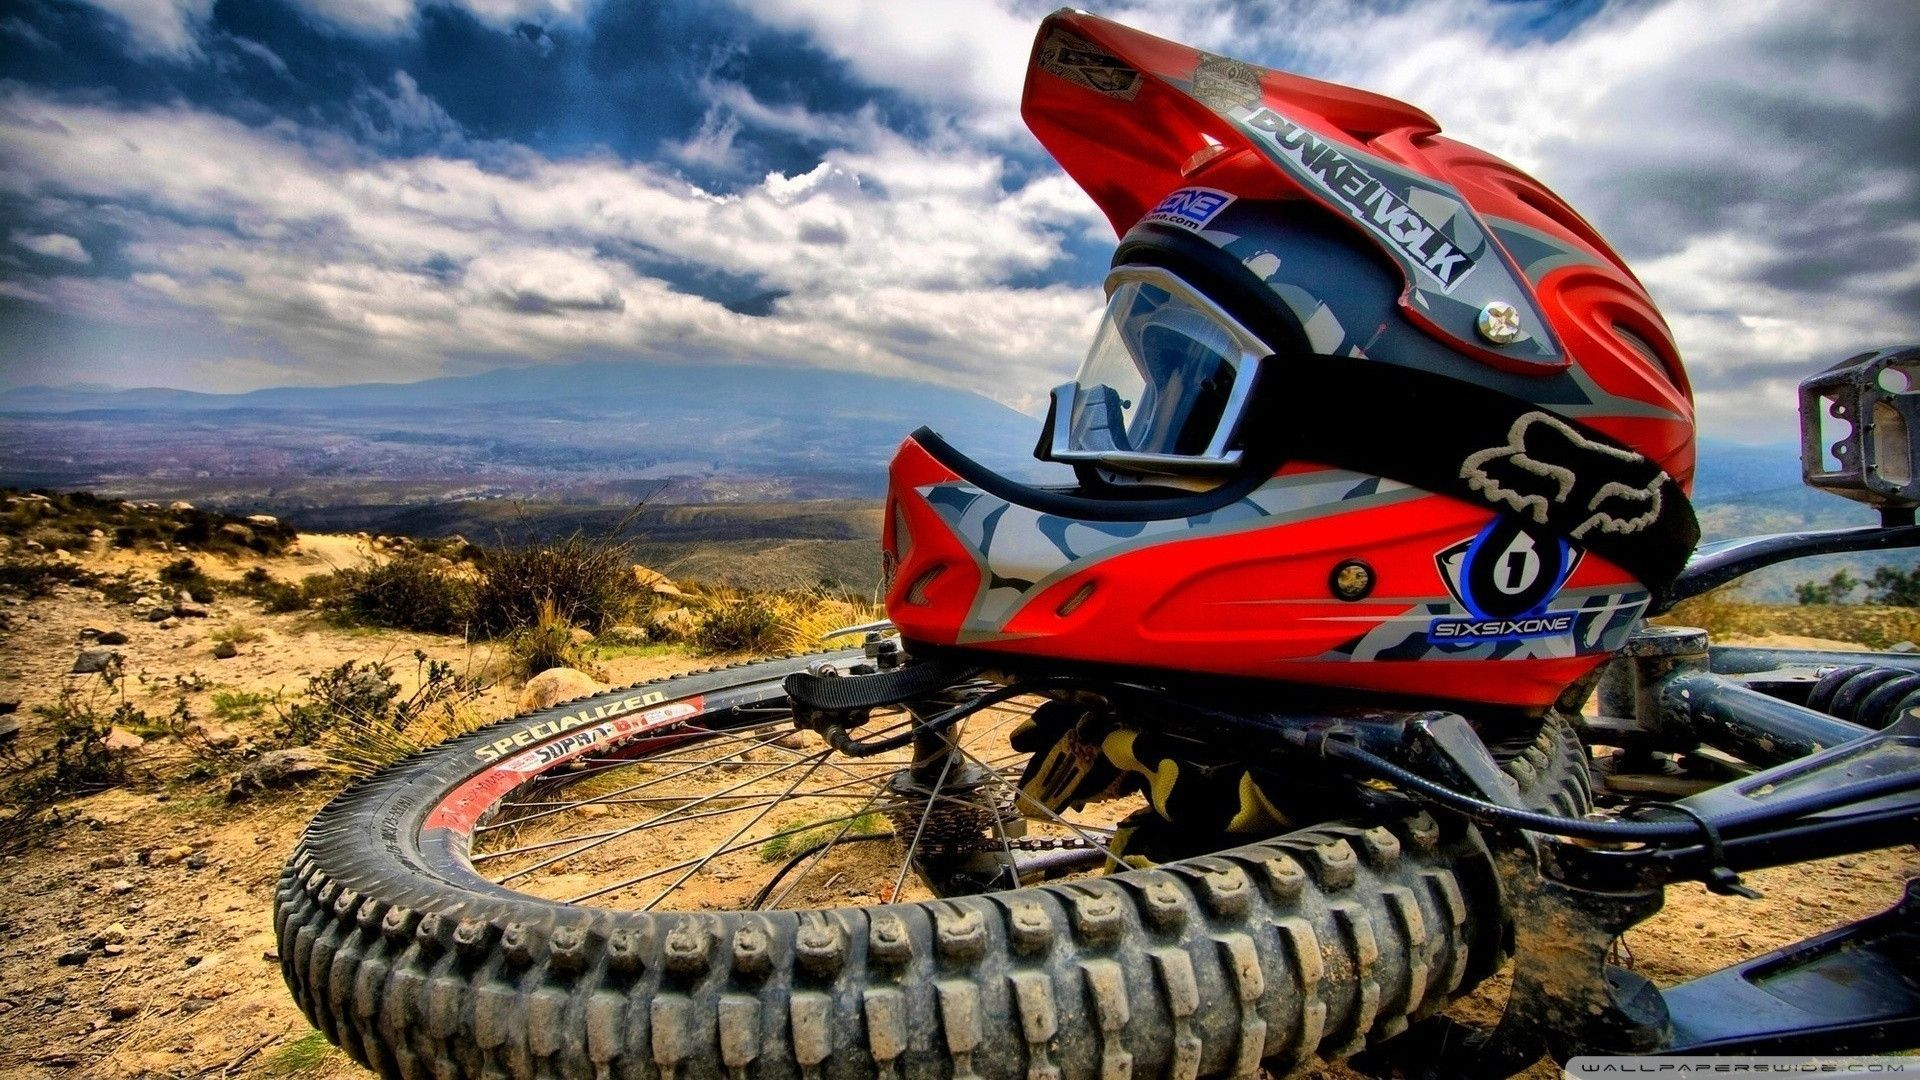 Motocross  Wallpaper   1920×1080 Wallpaper Motocross (37 Wallpapers) | Adorable Wallpapers